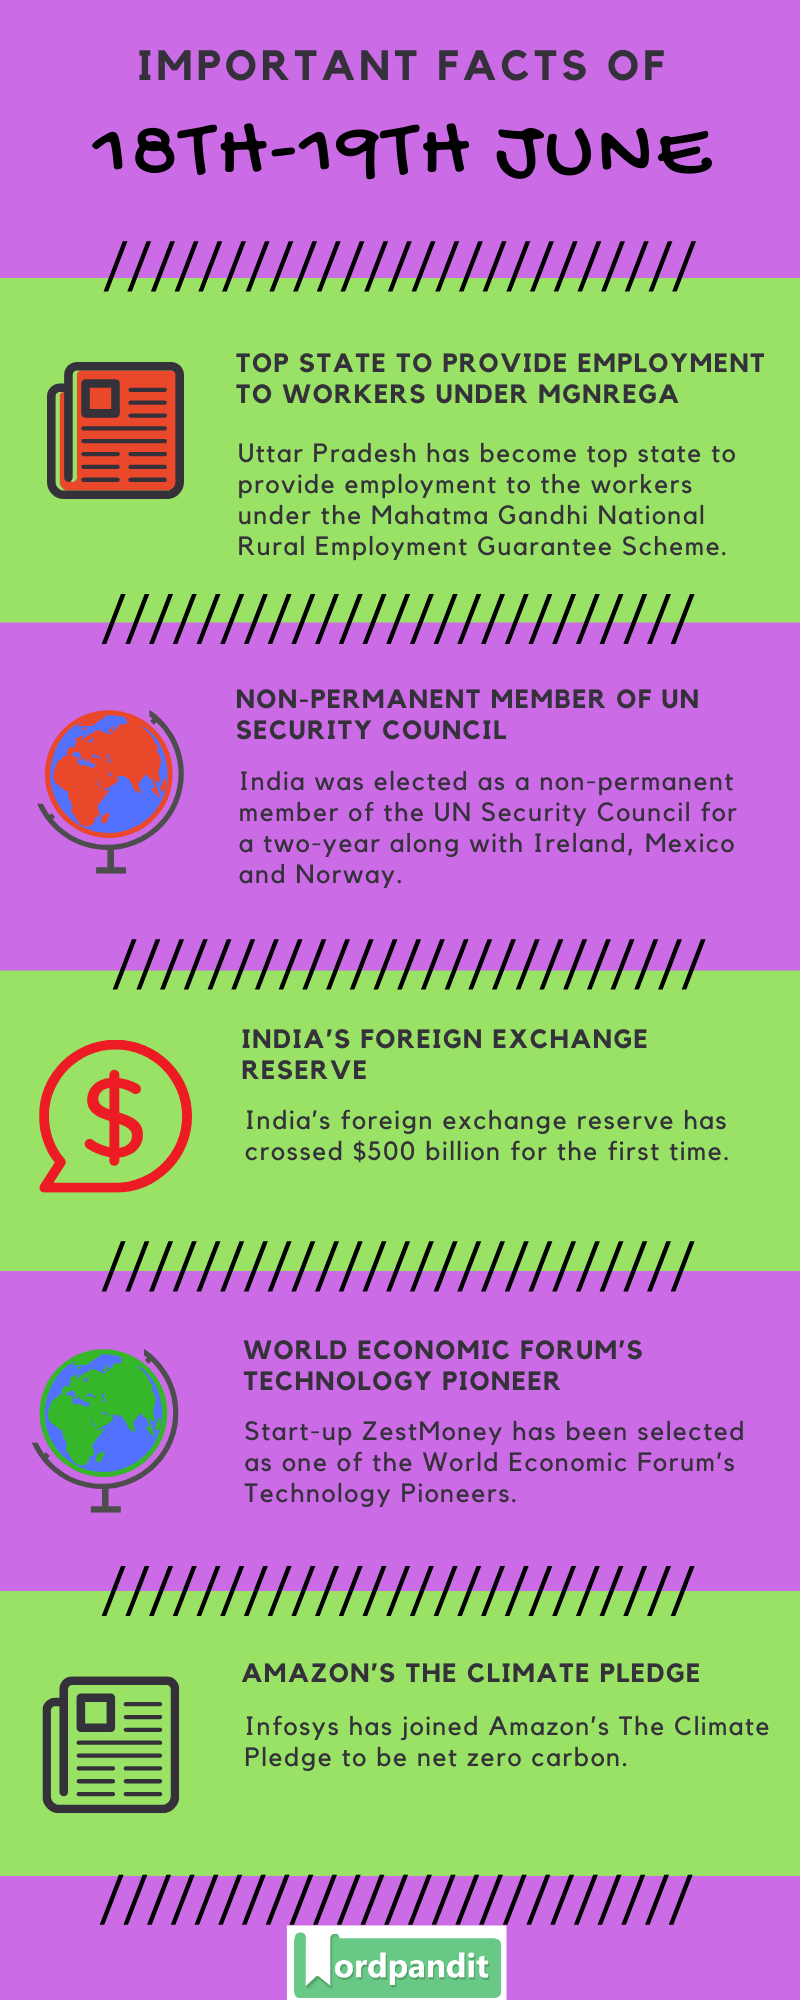 Daily Current Affairs 18th-19th June 2020 Current Affairs Quiz 18th-19th June 2020 Current Affairs Infographic